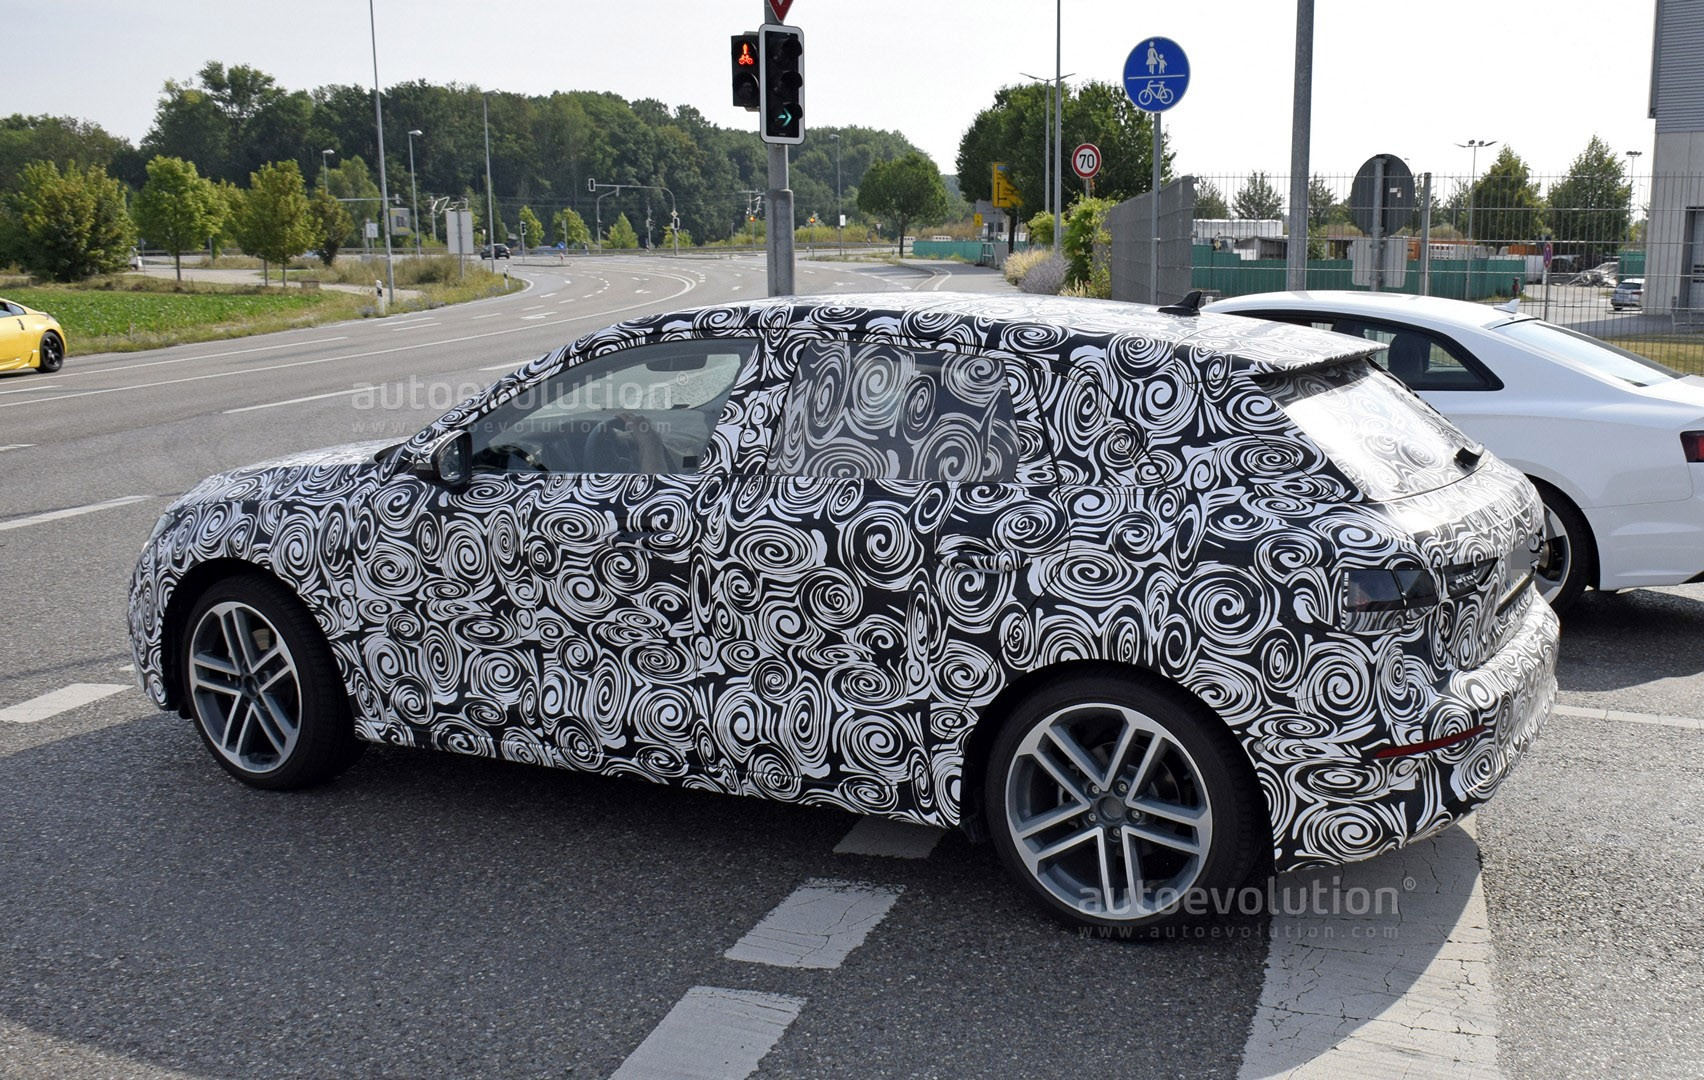 2020 Audi A3 Shows Huge Hexagonal Grille On Long Nose Autoevolution